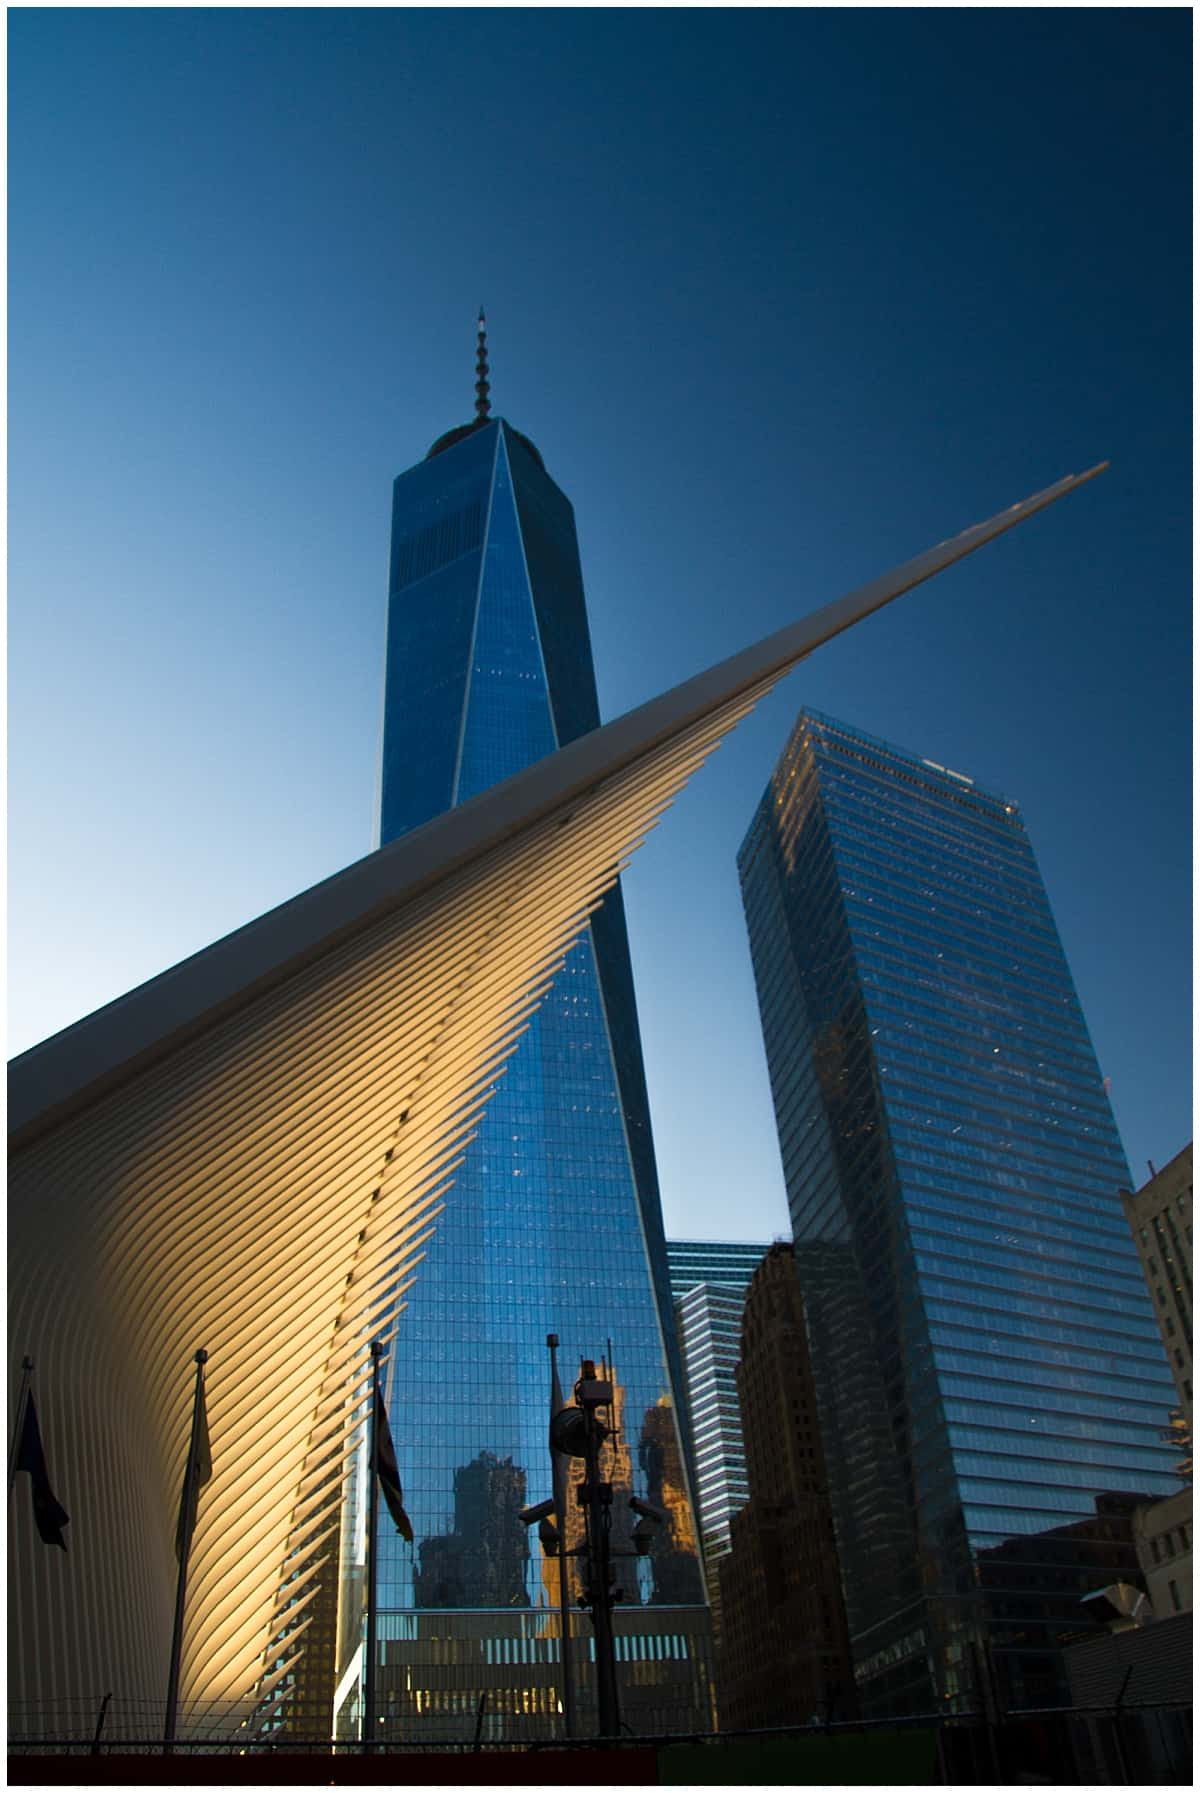 Calatrava oculus in New York